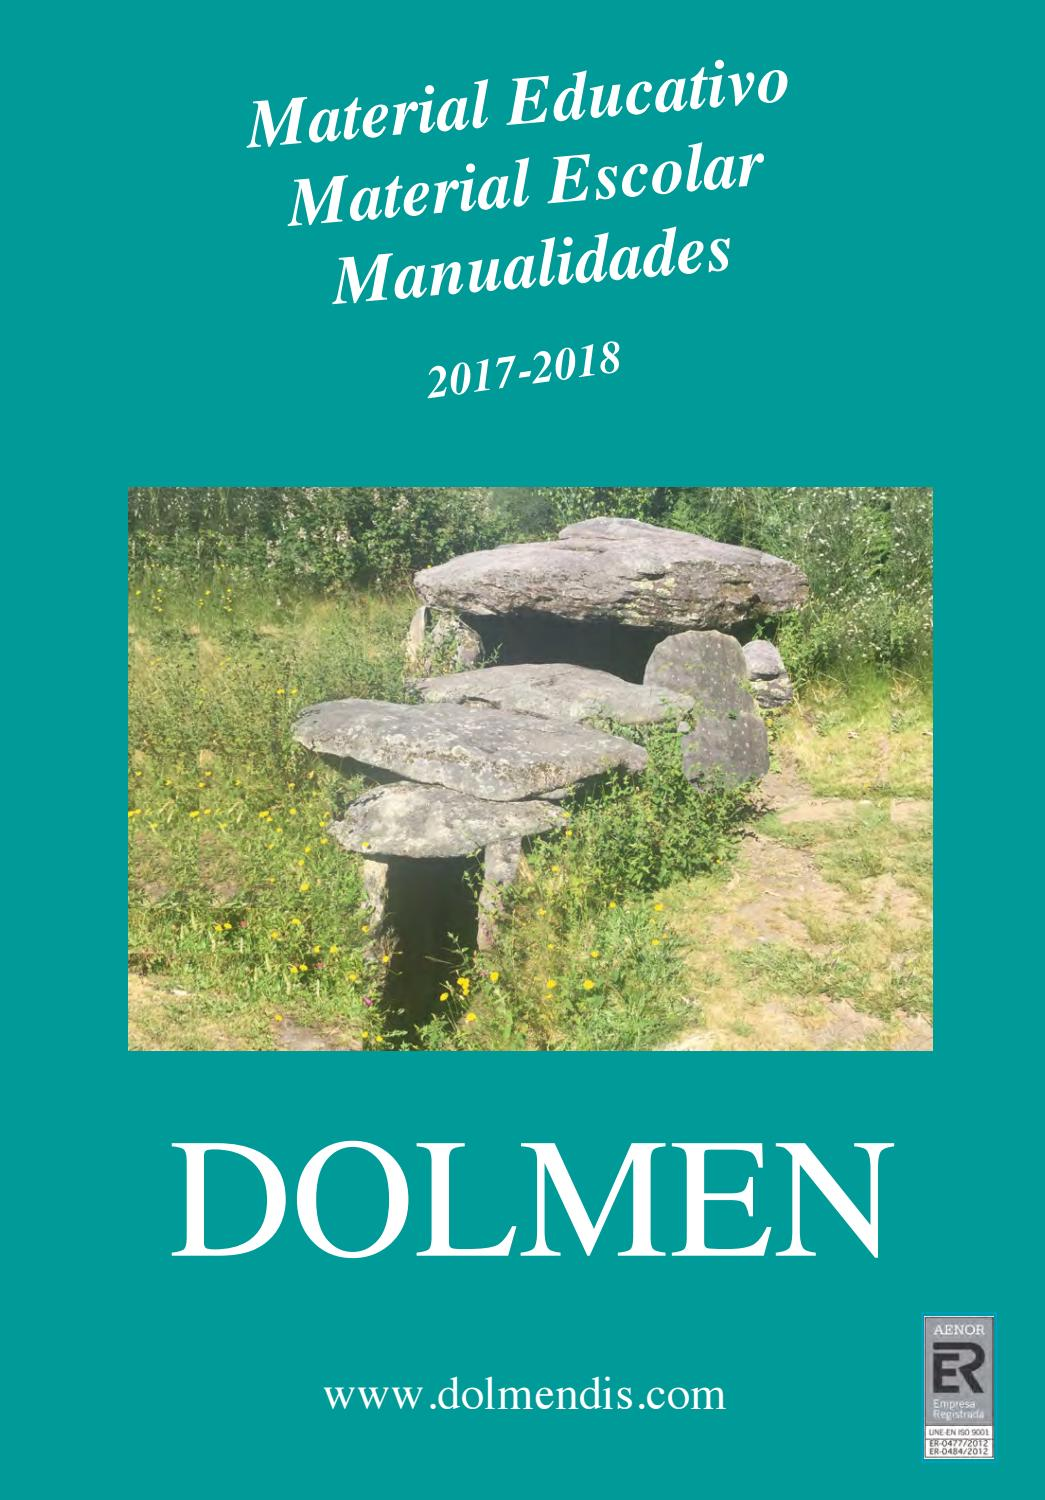 MATERIAL DIDACTICO DOLMEN 2017 by Dolmendis - issuu